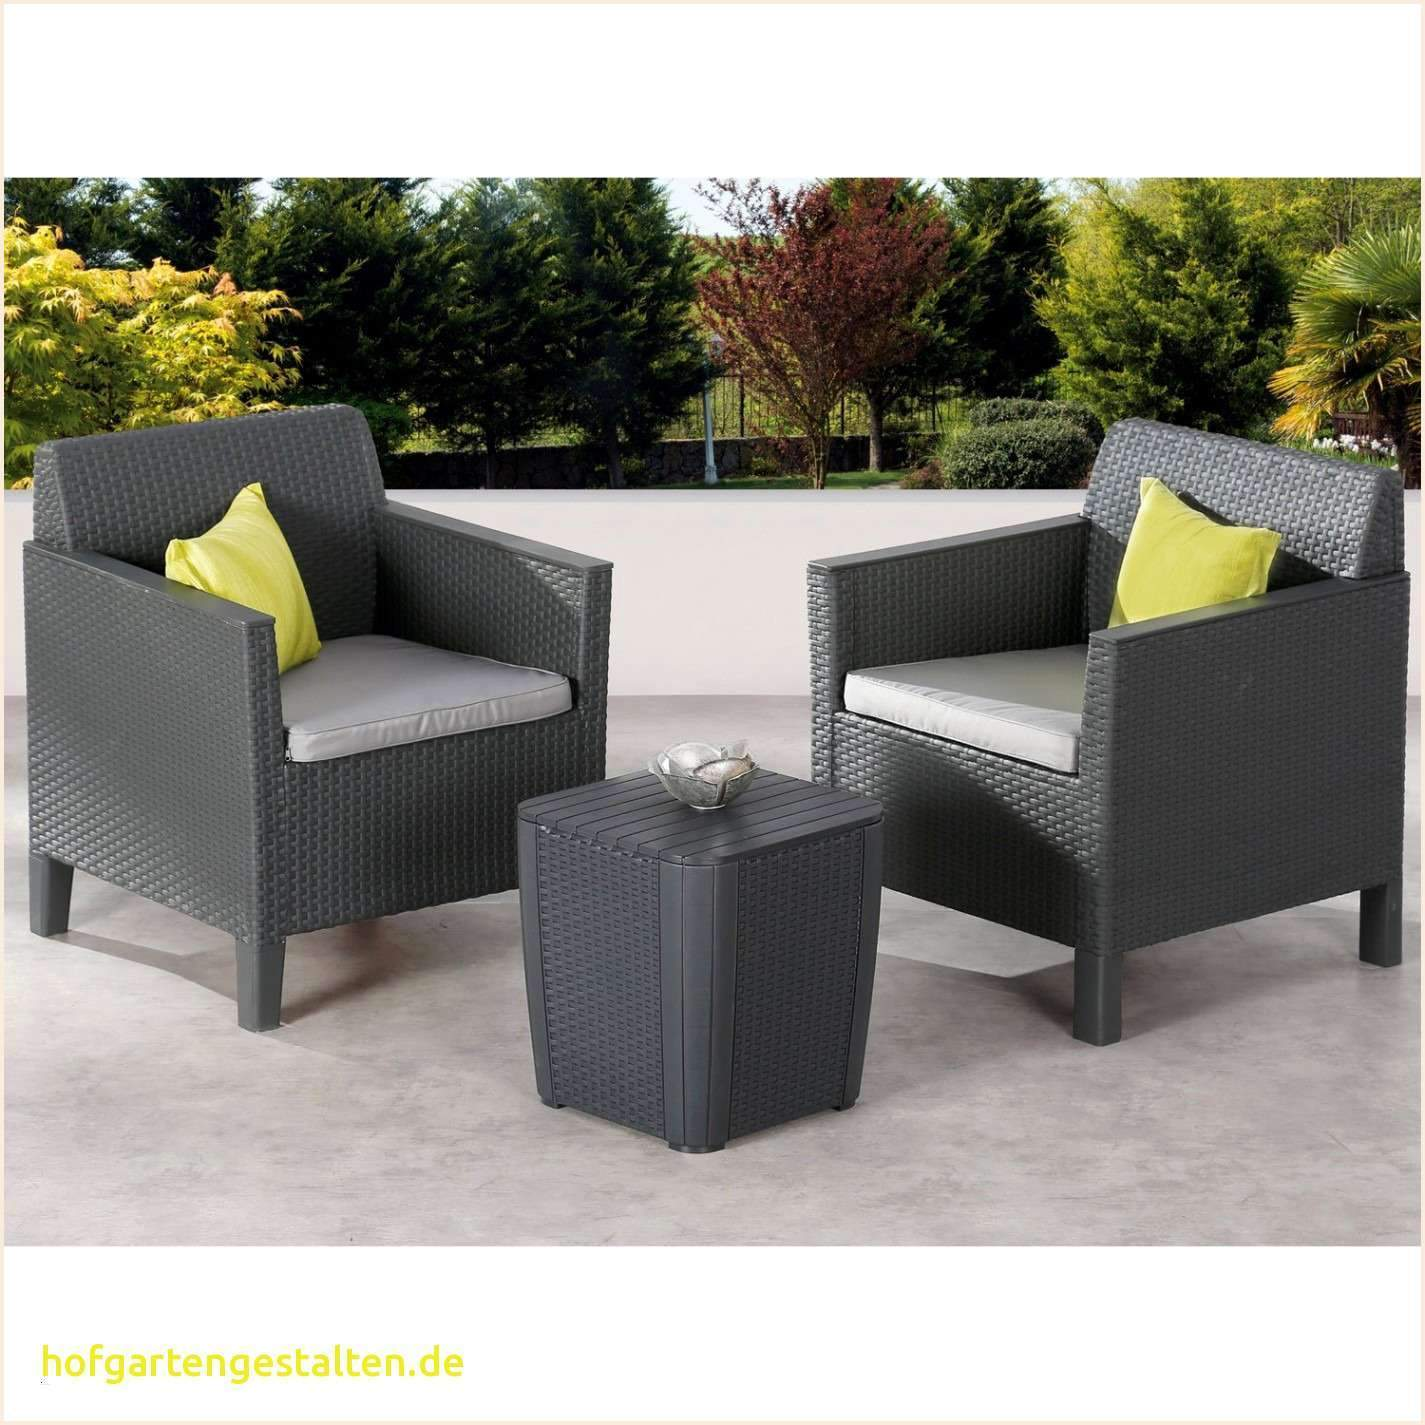 40 garten lounge sessel inspiration watmjmkn of polyrattan sessel verstellbar